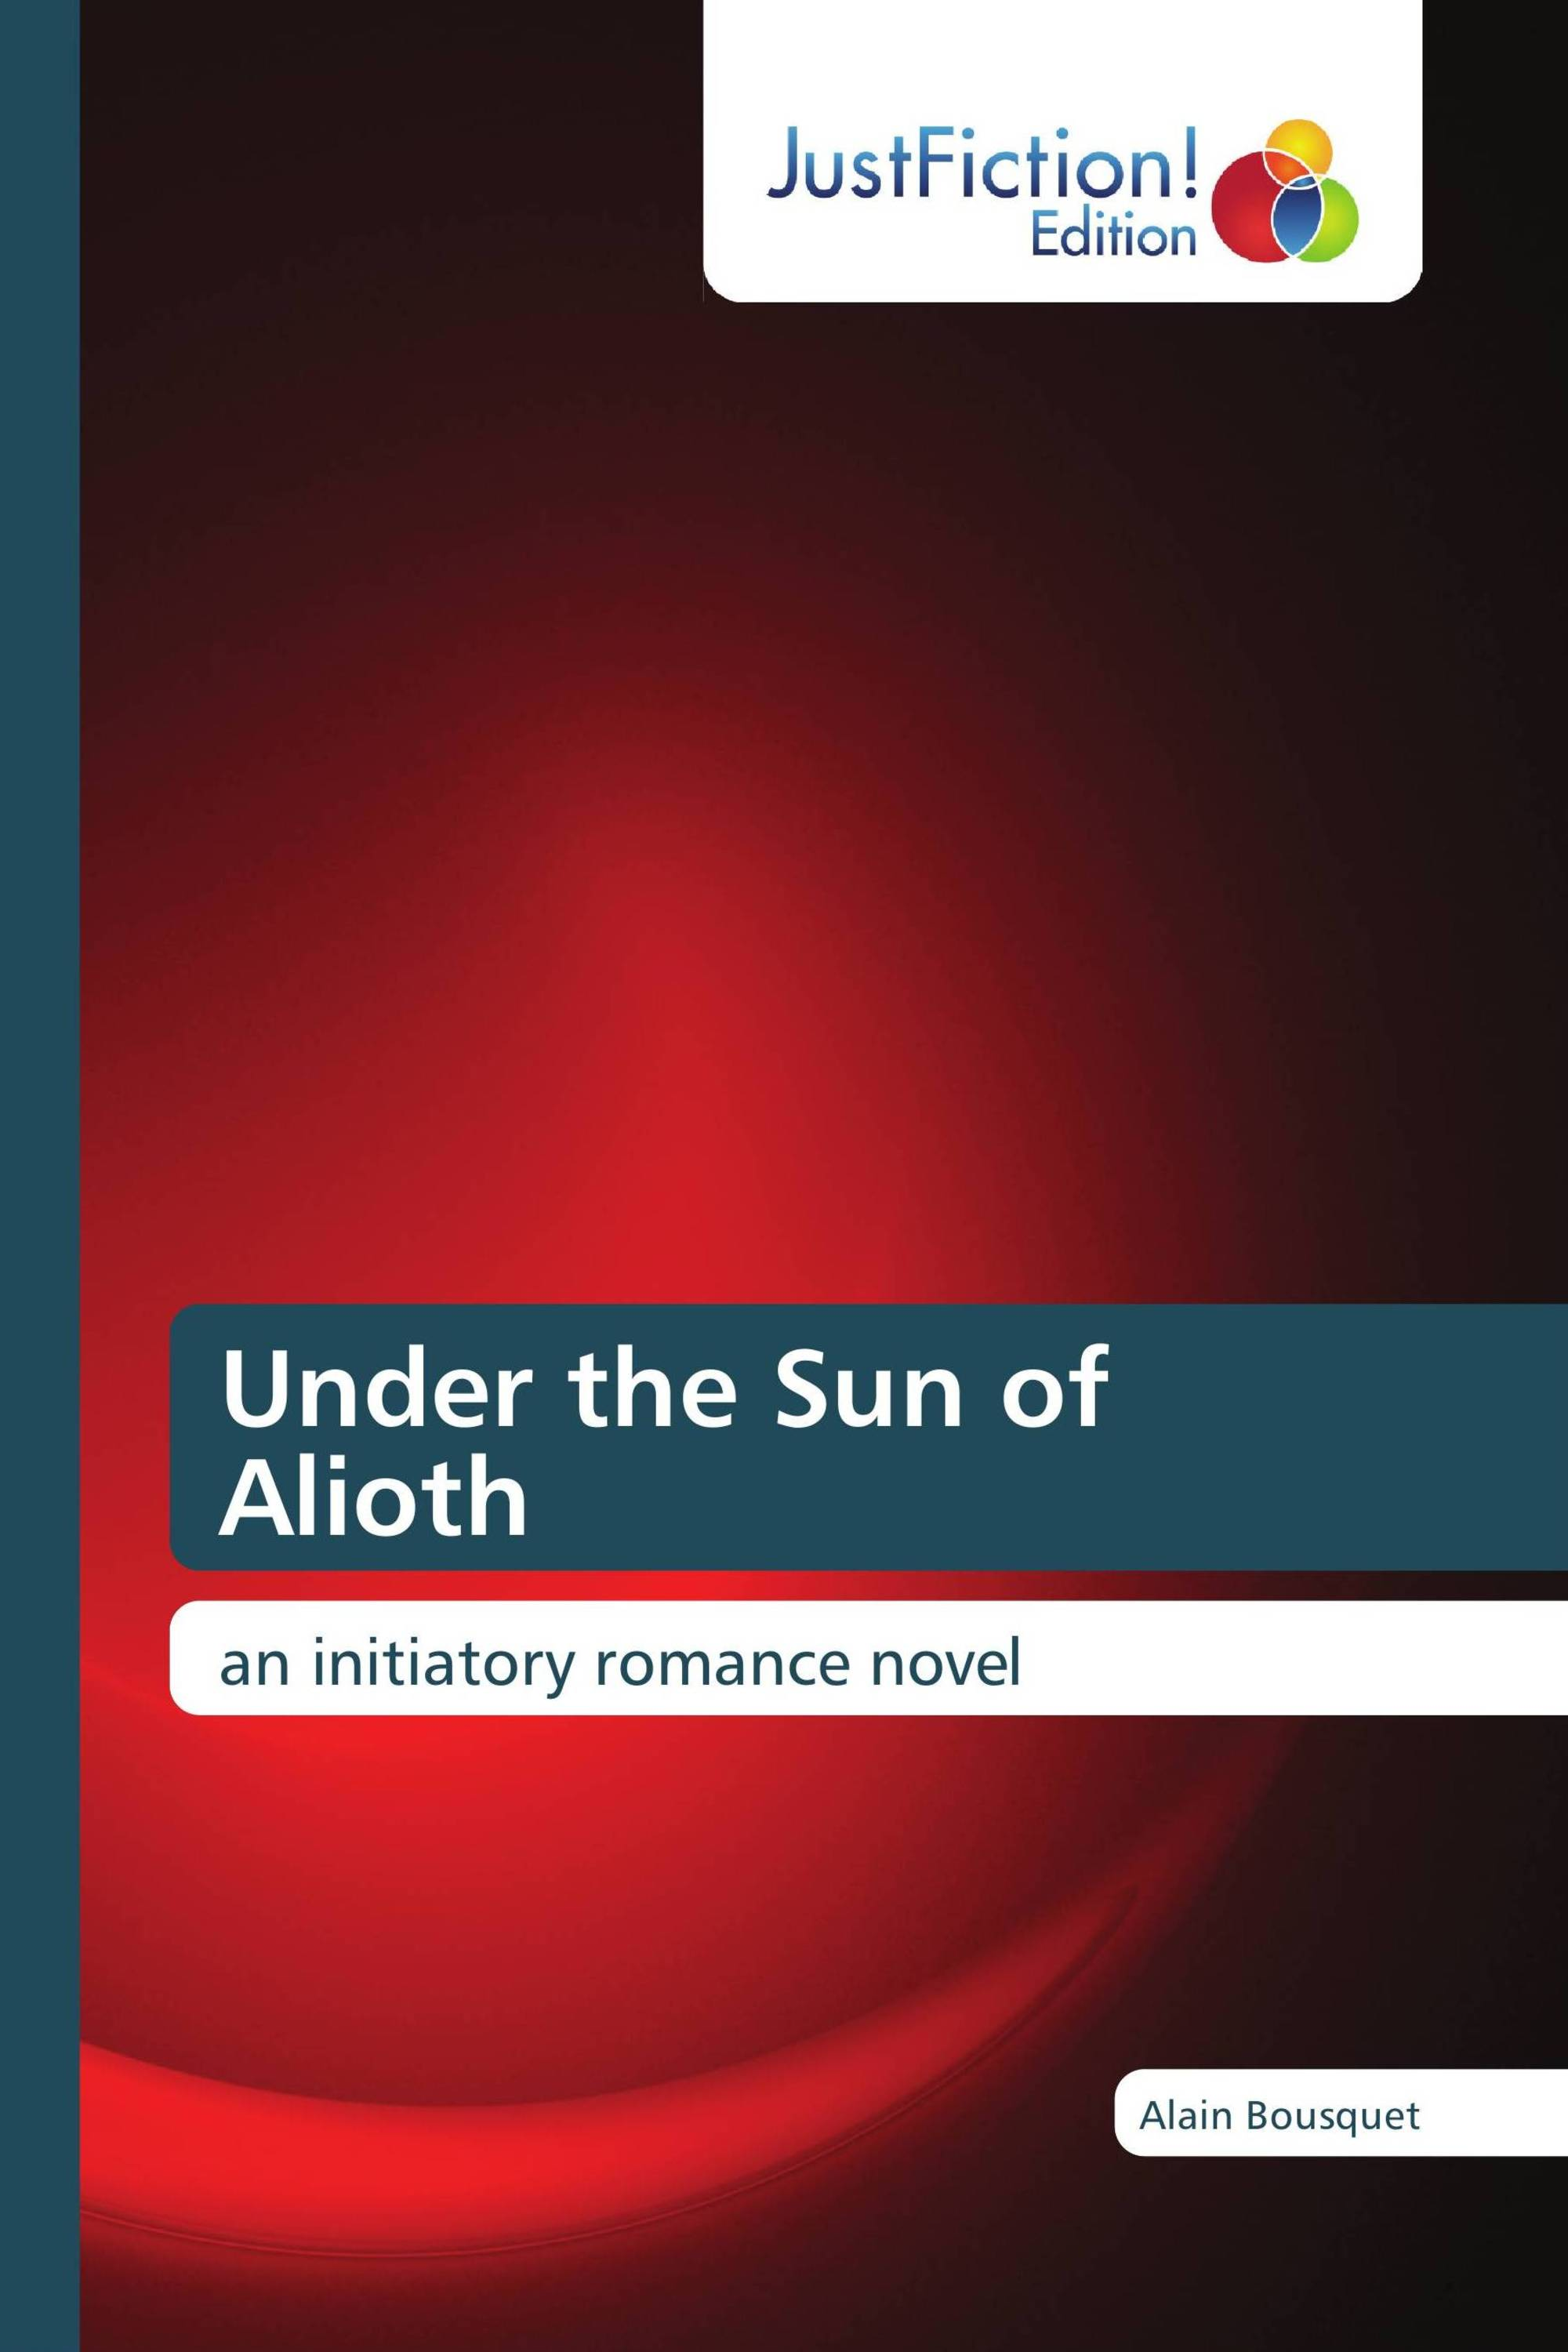 Under the Sun of Alioth